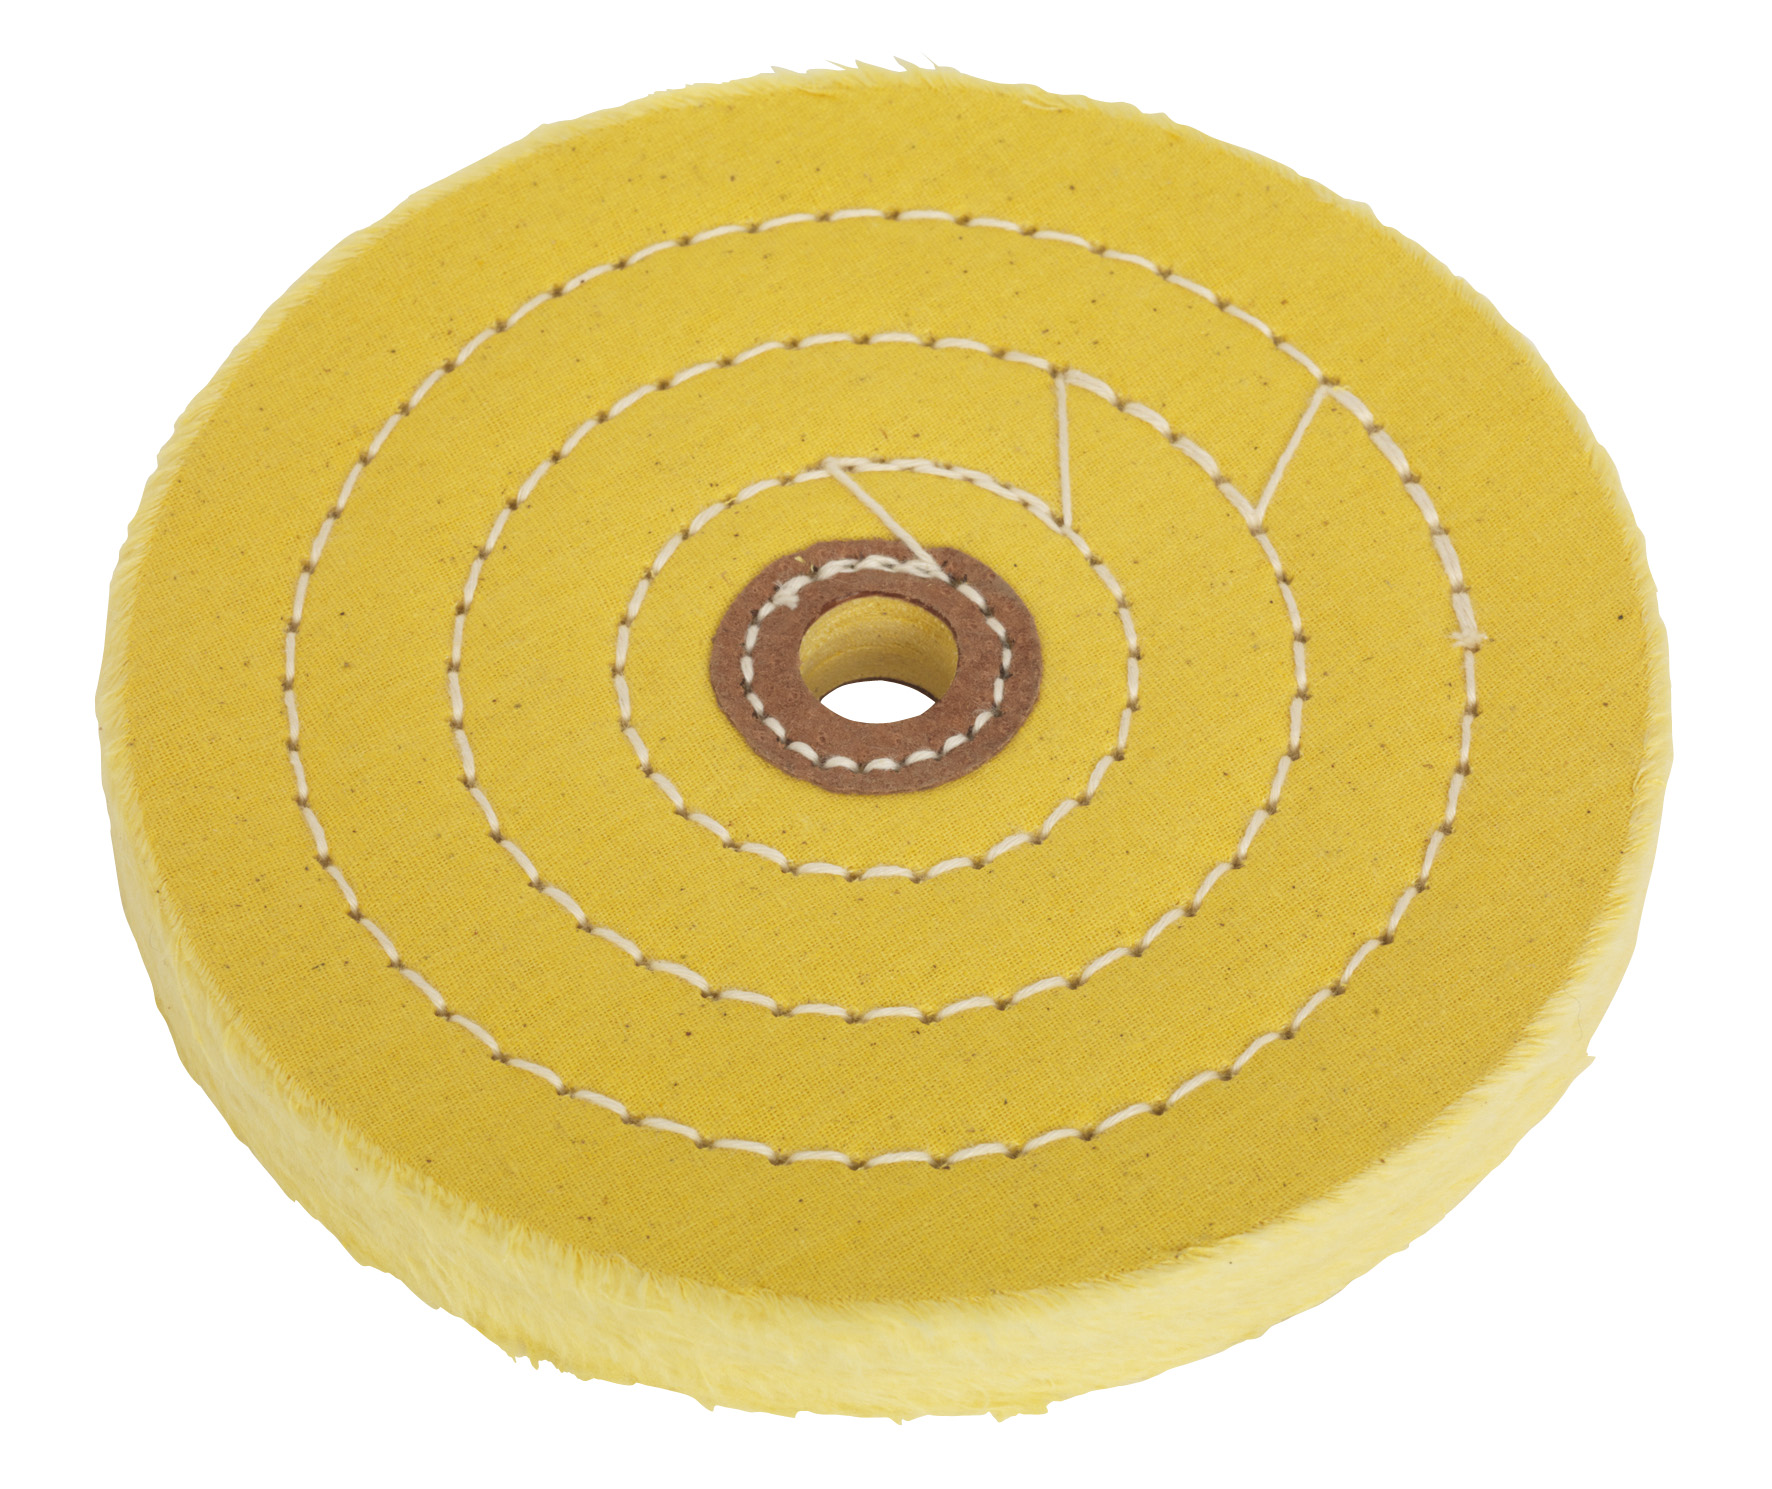 Bg150bwc Sealey Buffing Wheel 150 X 13mm 13mm Bore Coarse